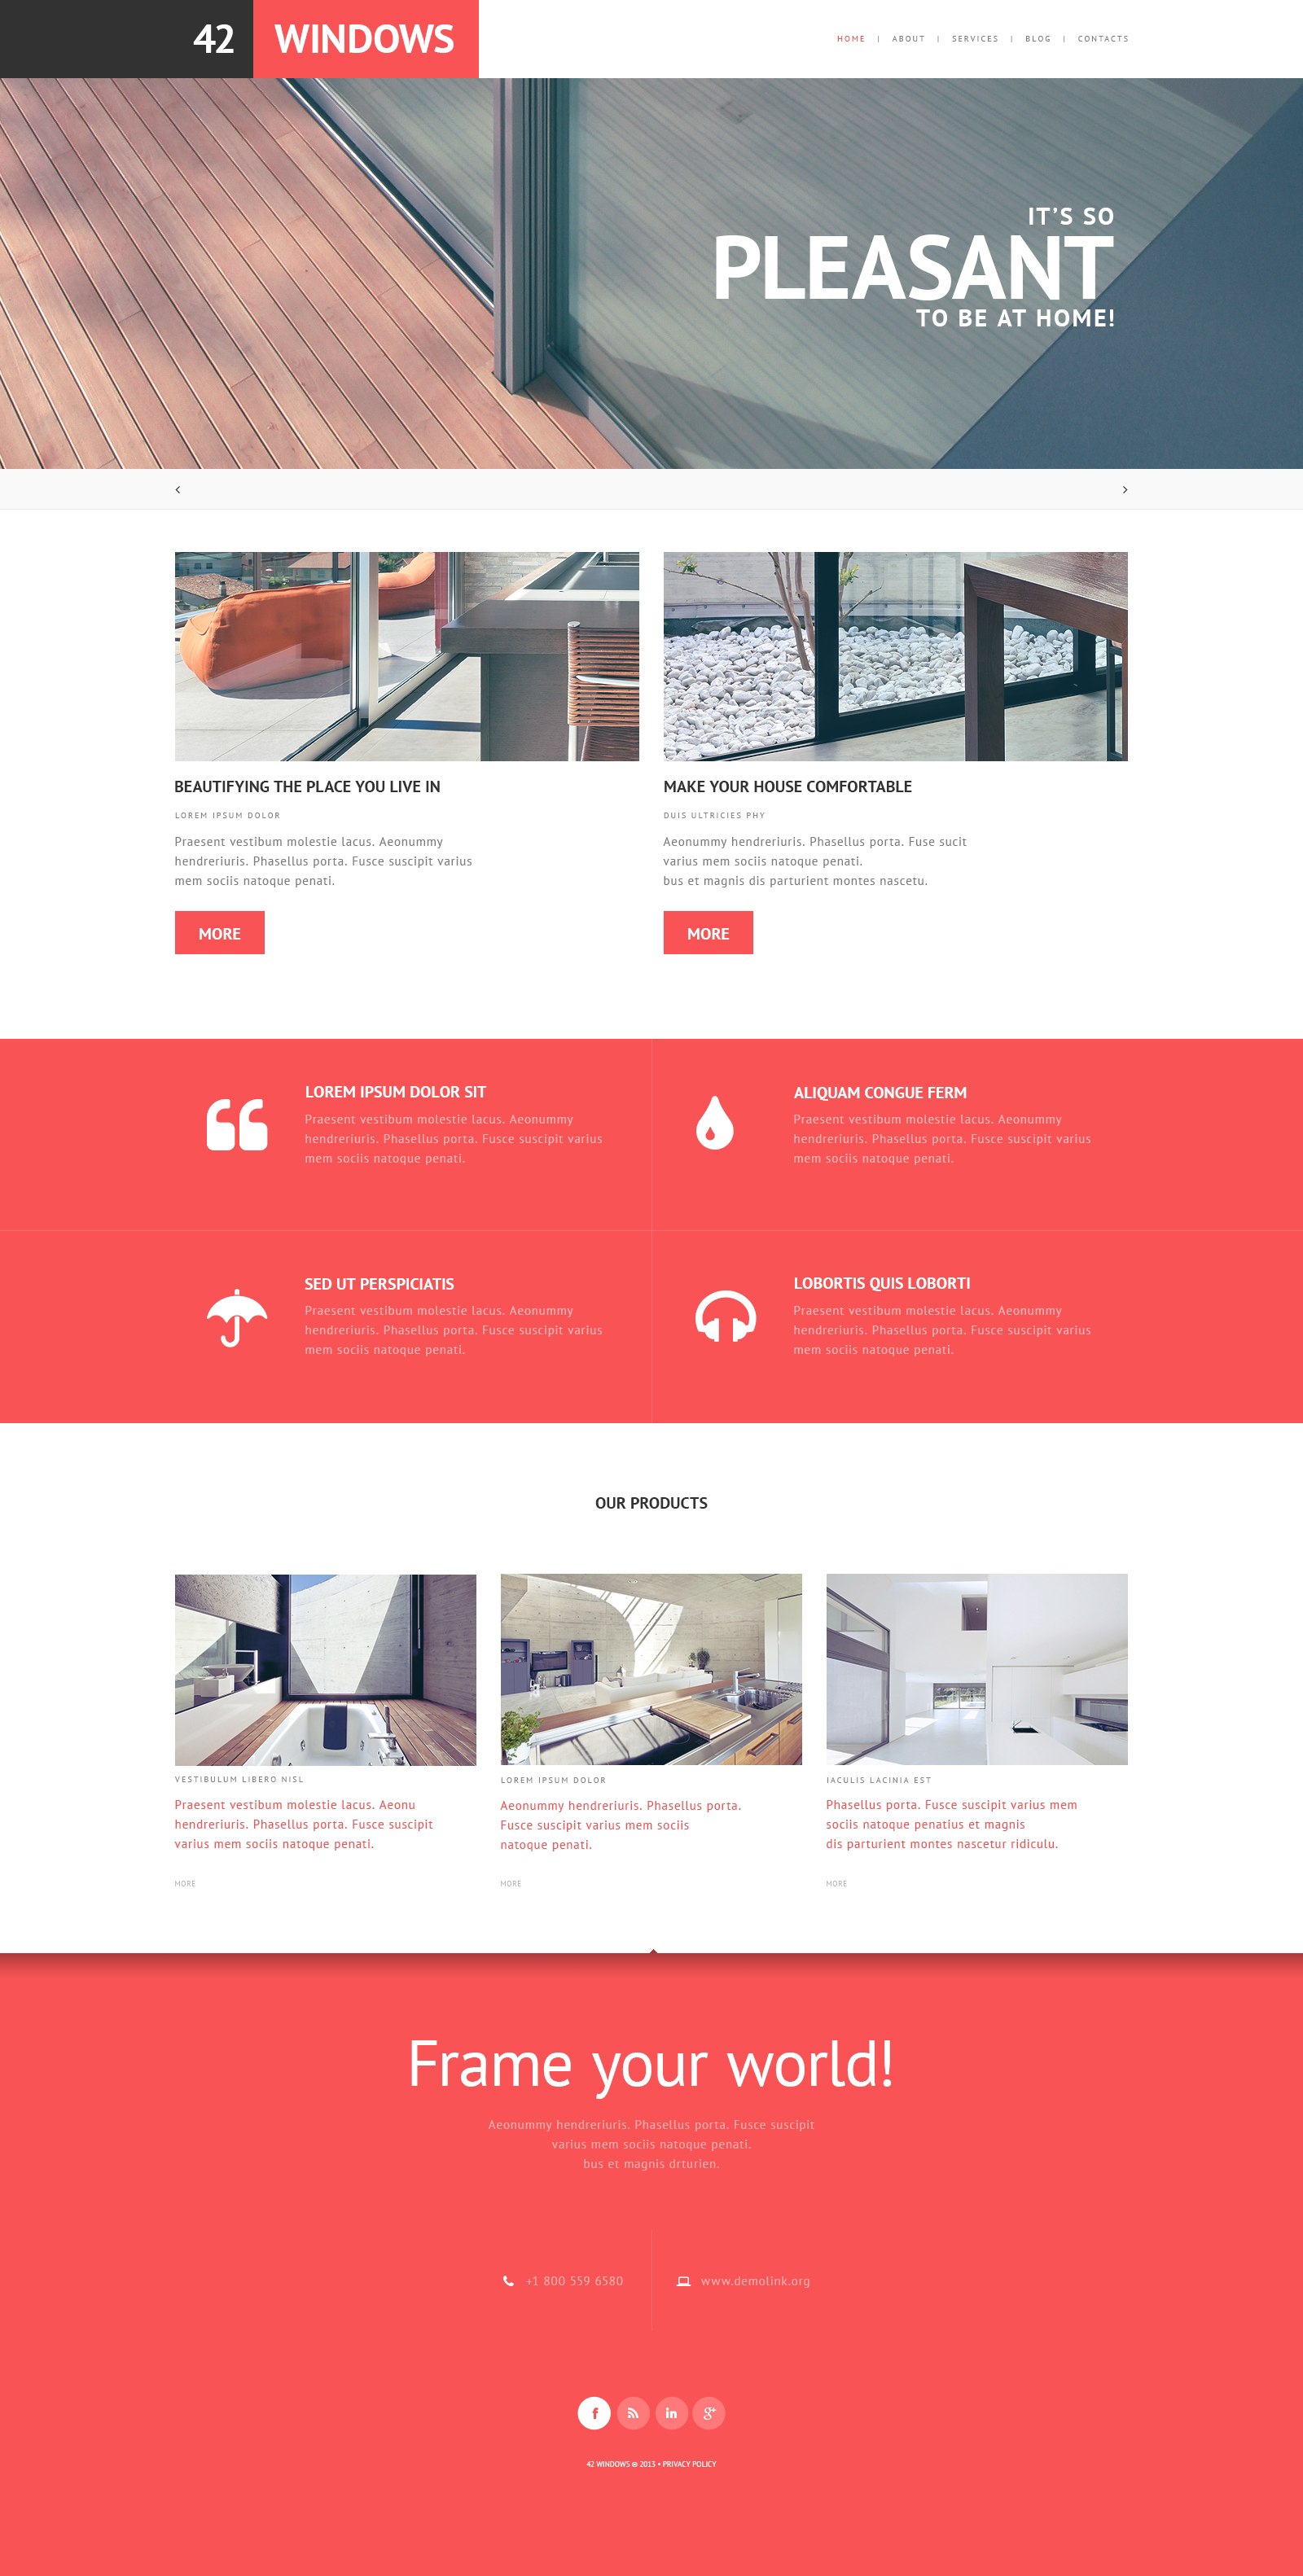 Responsives WordPress Theme für Fenster #47785